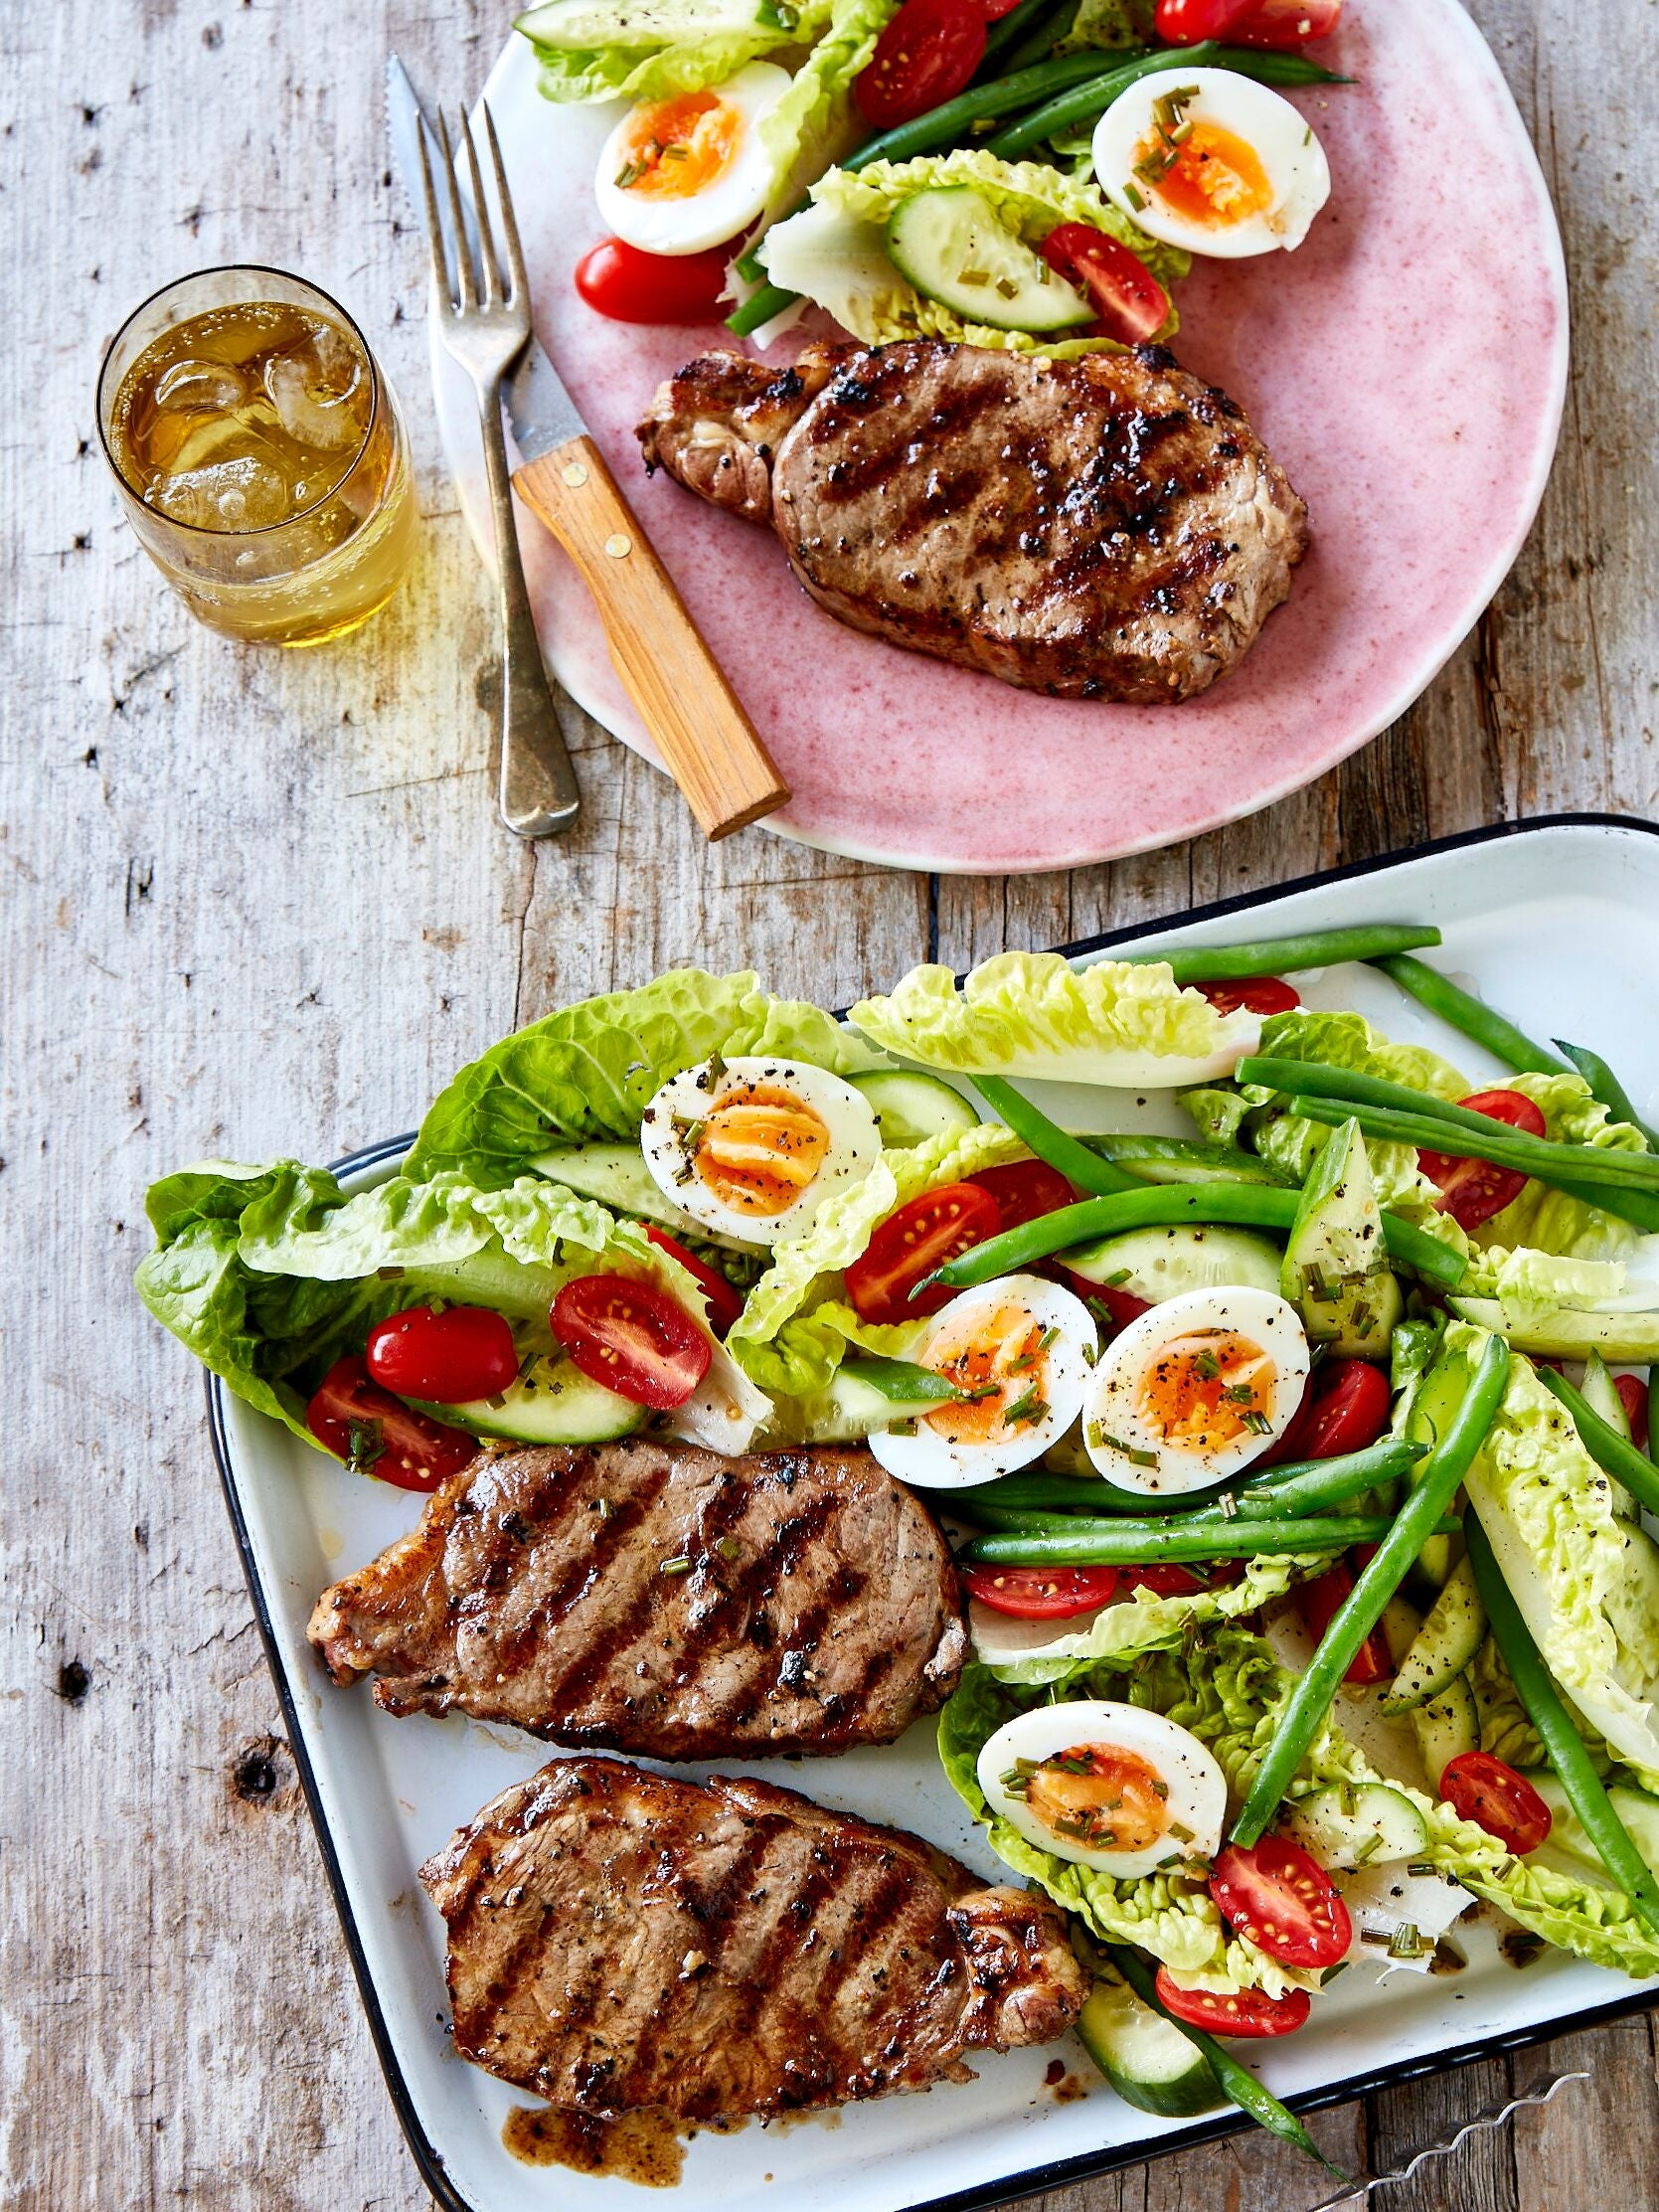 PORTERHOUSE STEAK NICOISE SALAD